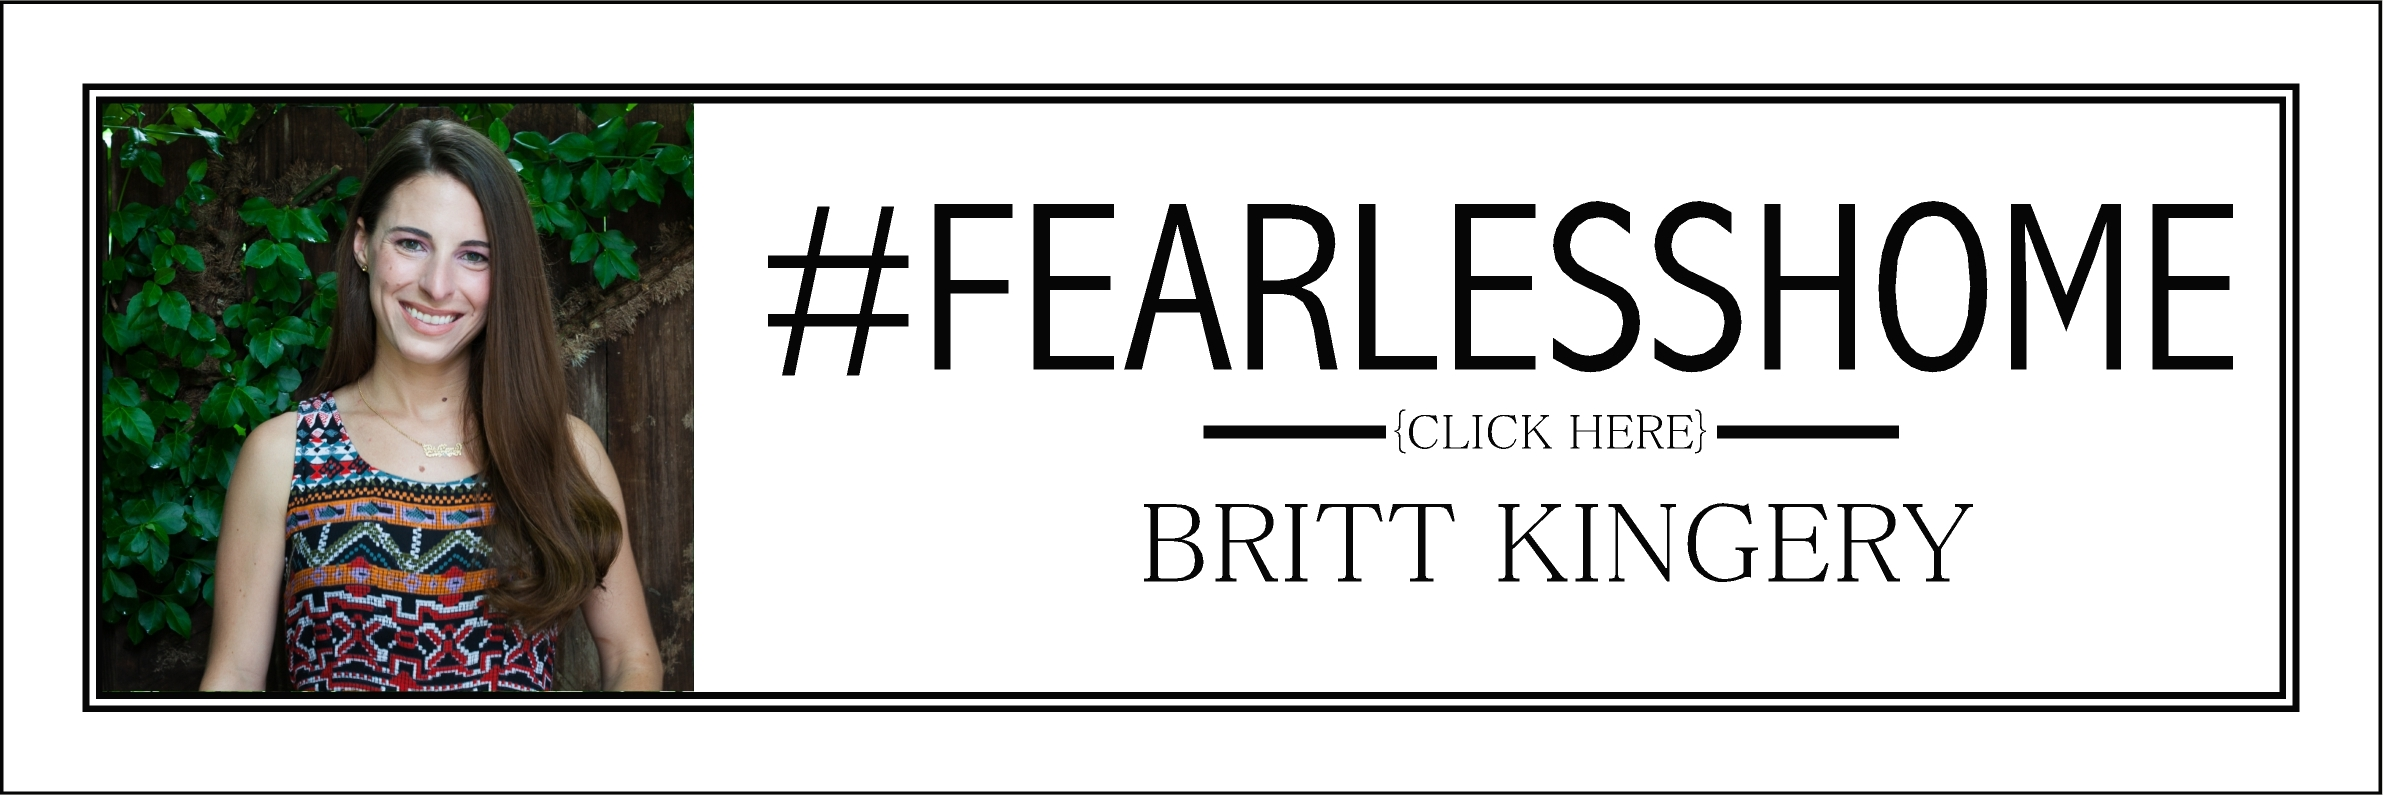 Fearless Home: Britt Kingery